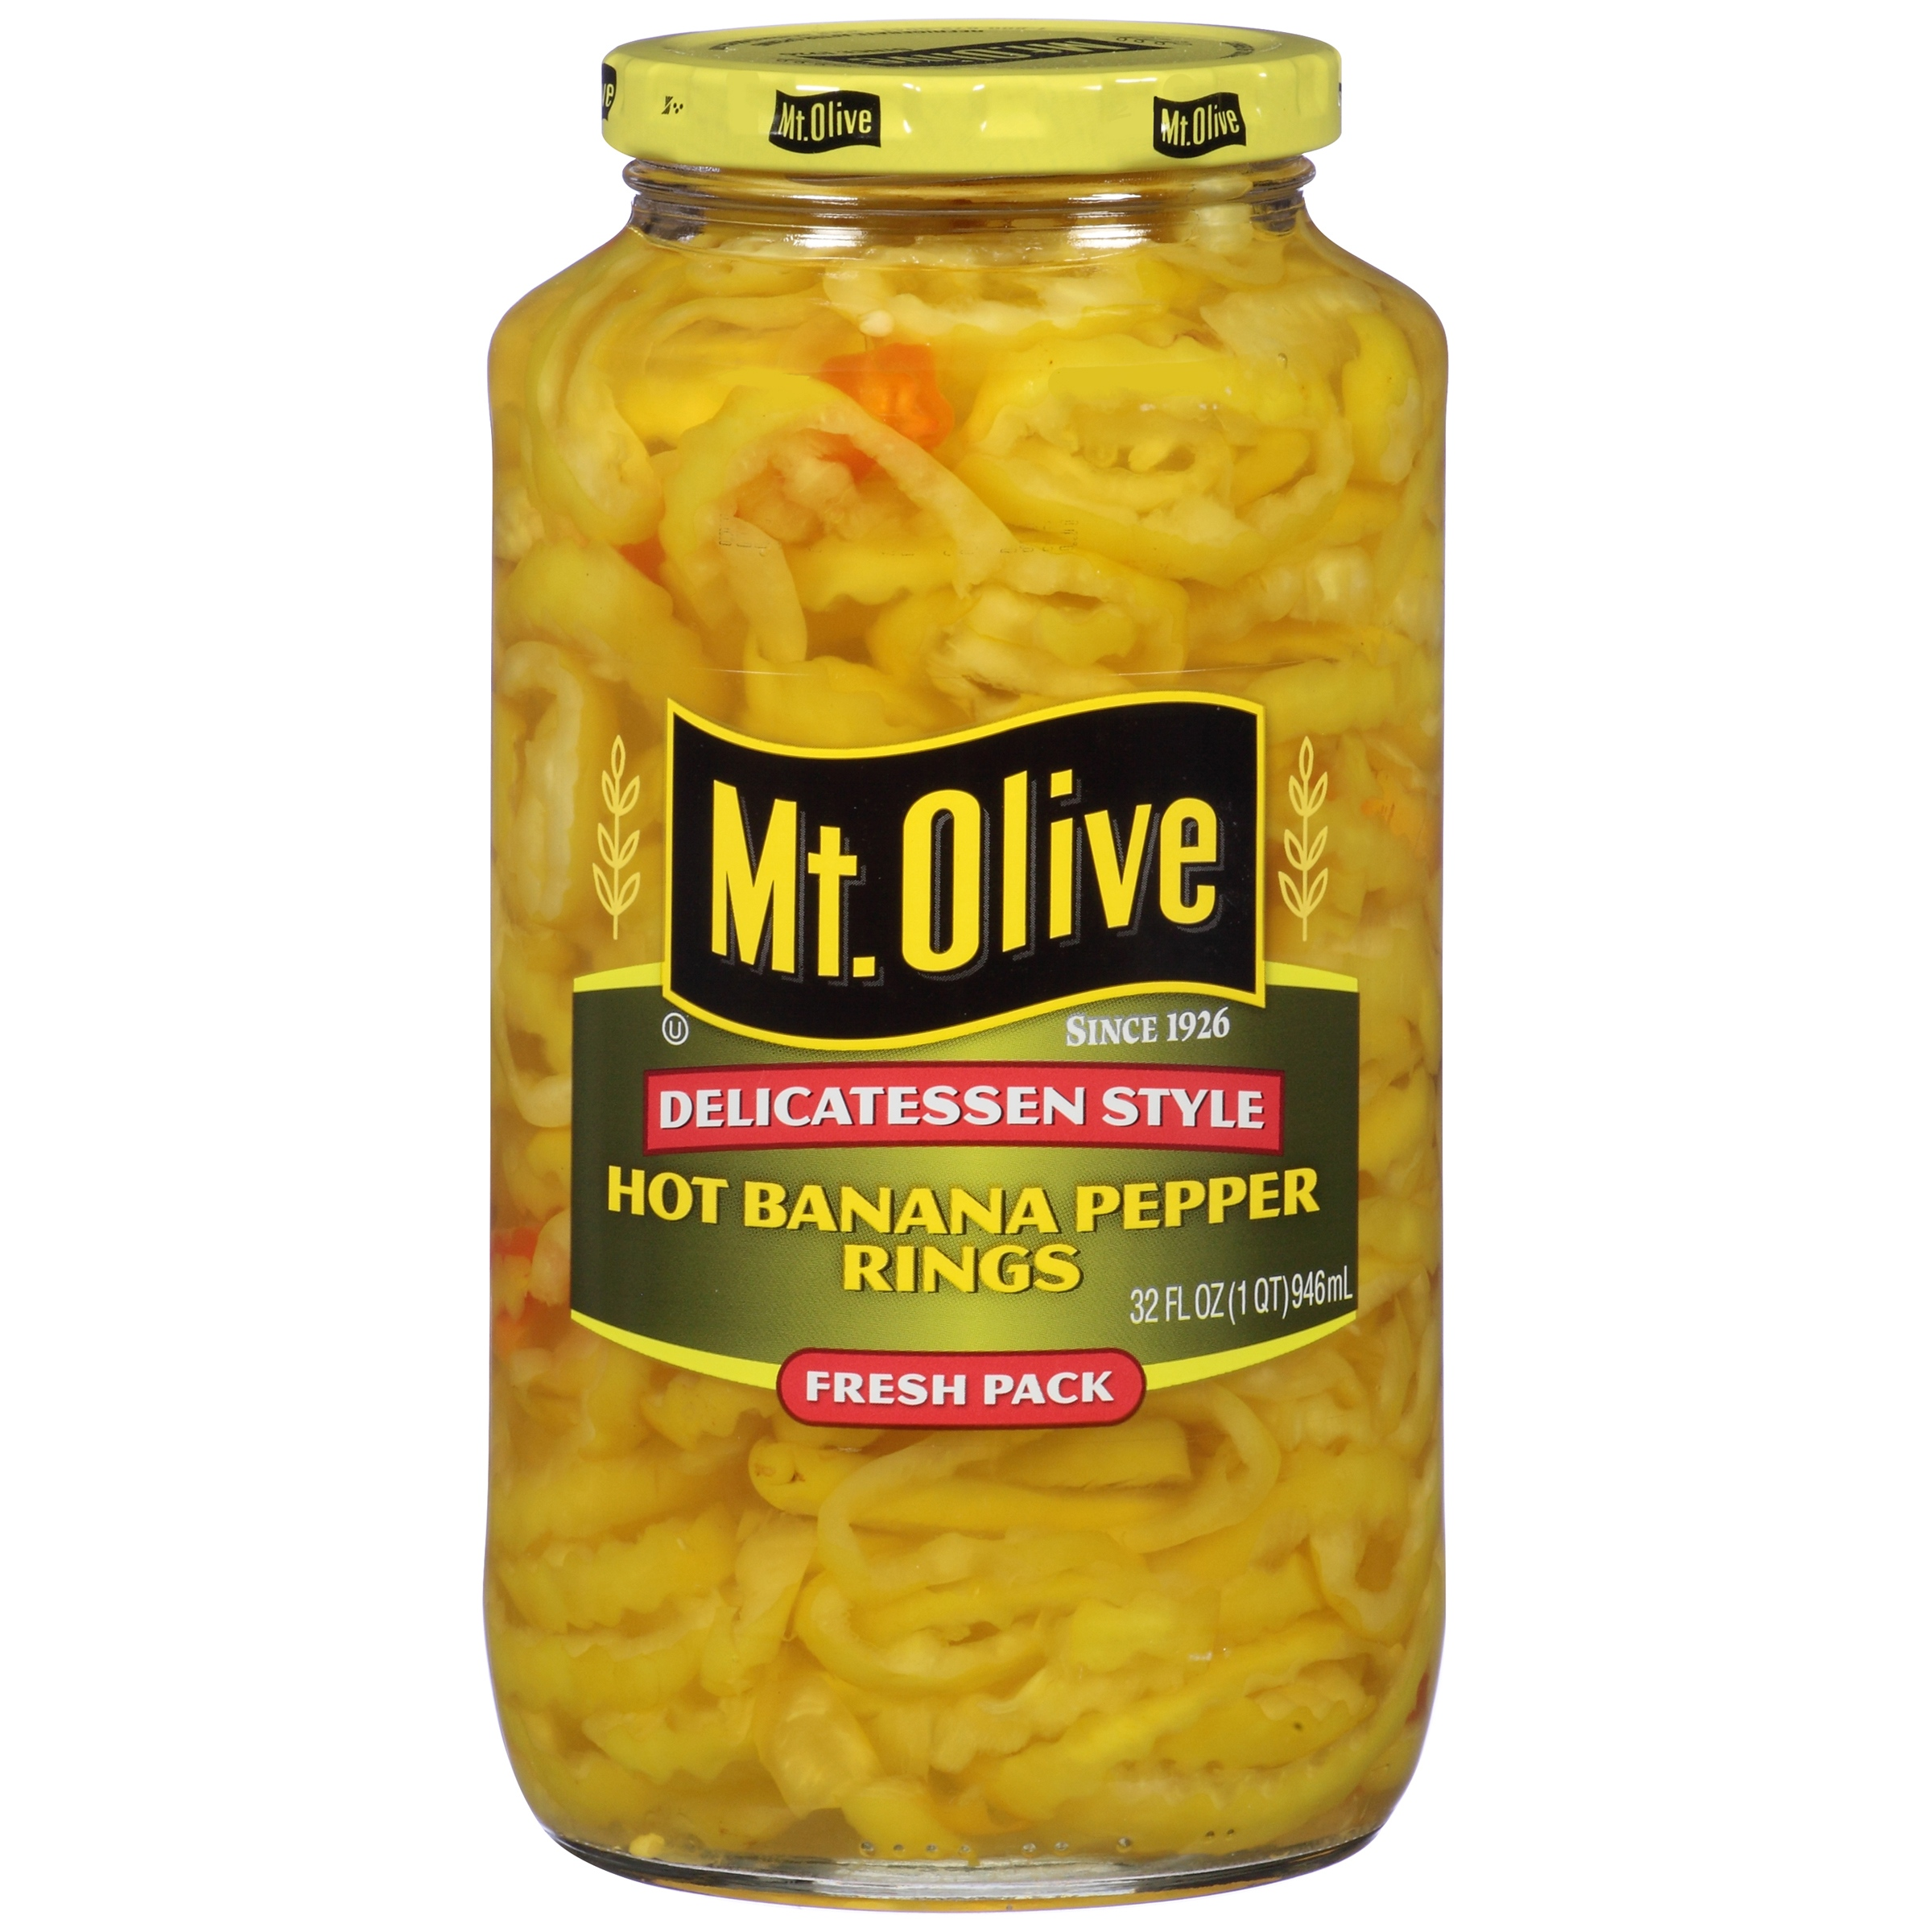 Mt. Olive Delicatessen Style Hot Banana Pepper Rings, 32 oz